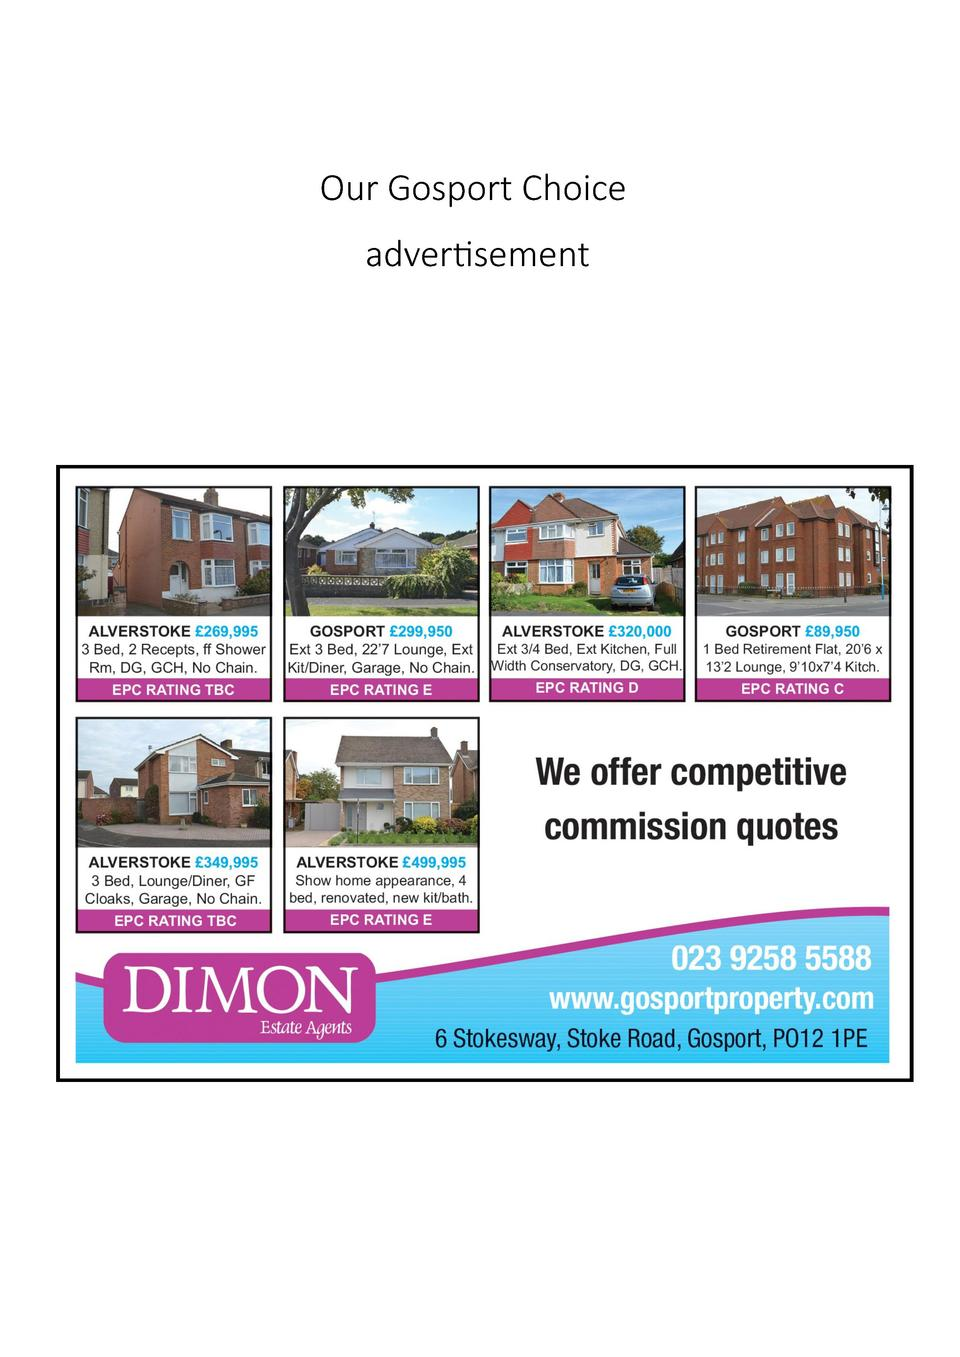 Our Gosport Choice advertisement